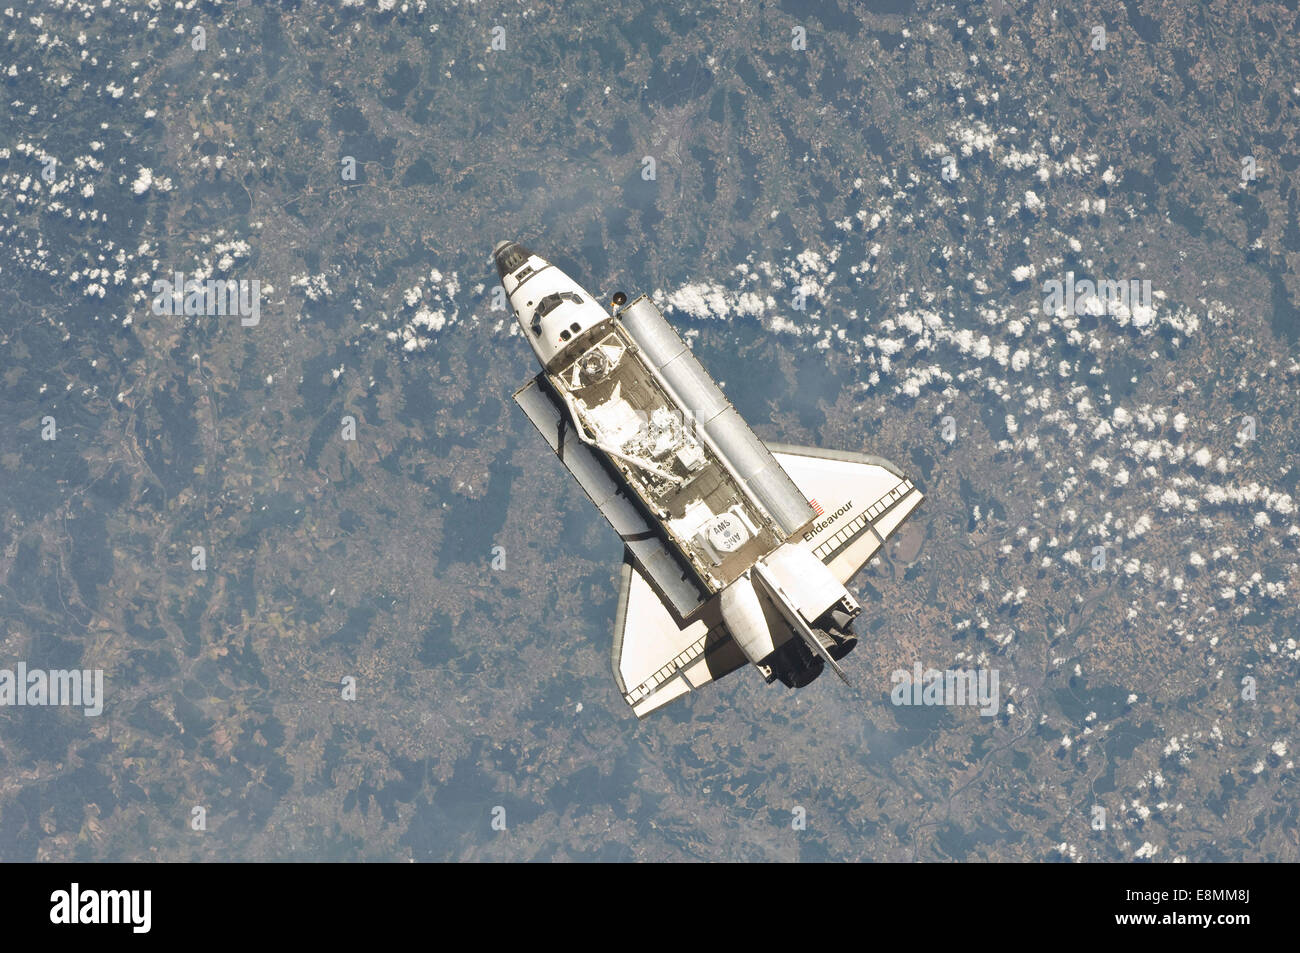 May 18, 2011 - Space shuttle Endeavour backdropped by a colorful Earth. - Stock Image